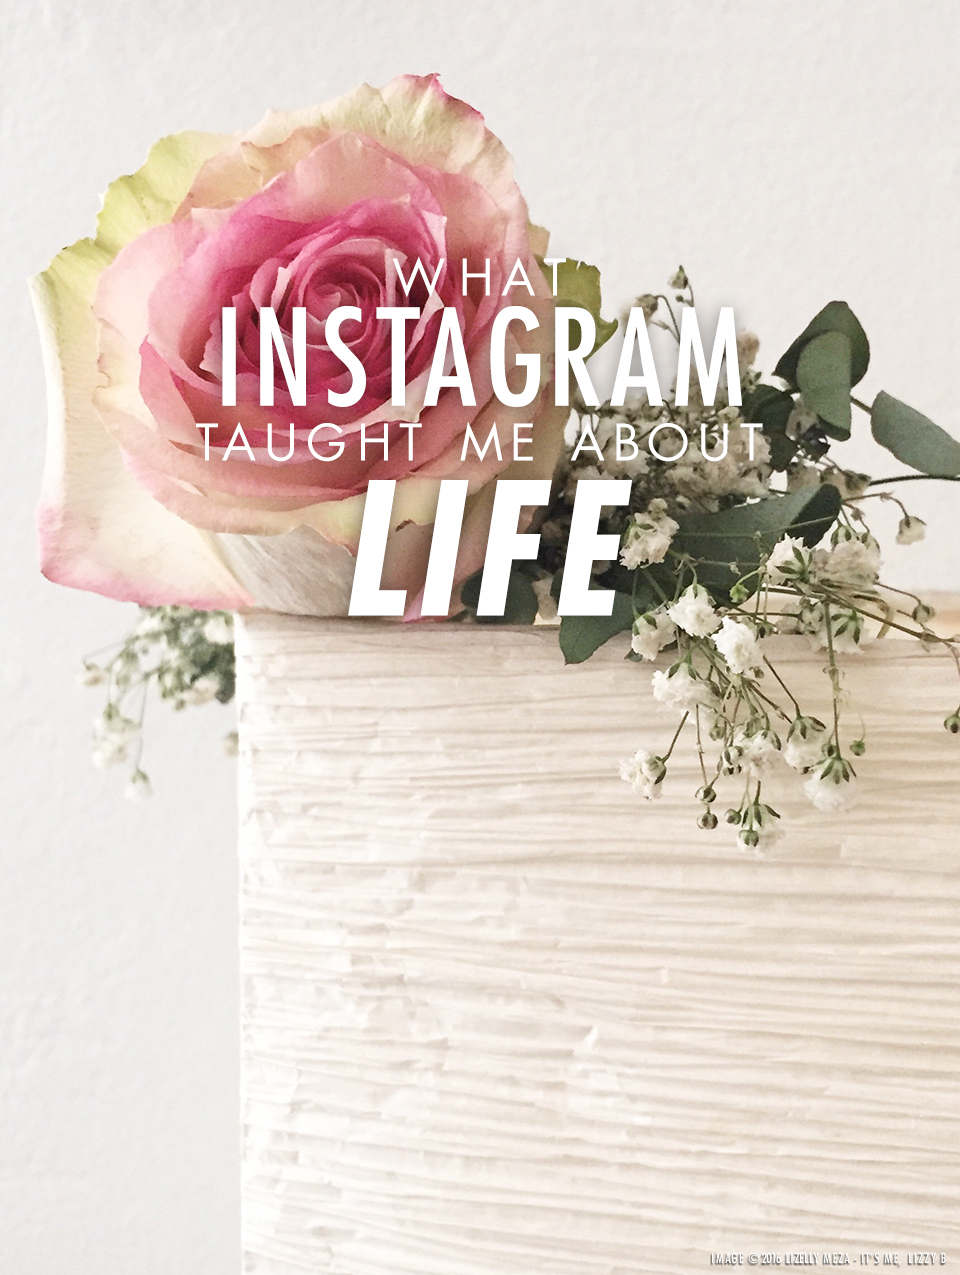 What Instagram Taught Me About Life // It's Me, Lizzy B - Musings on Life, Business, & The Pursuit of Everyday Joy // Personal blog of Lizelly Meza from Lizzy B Loves